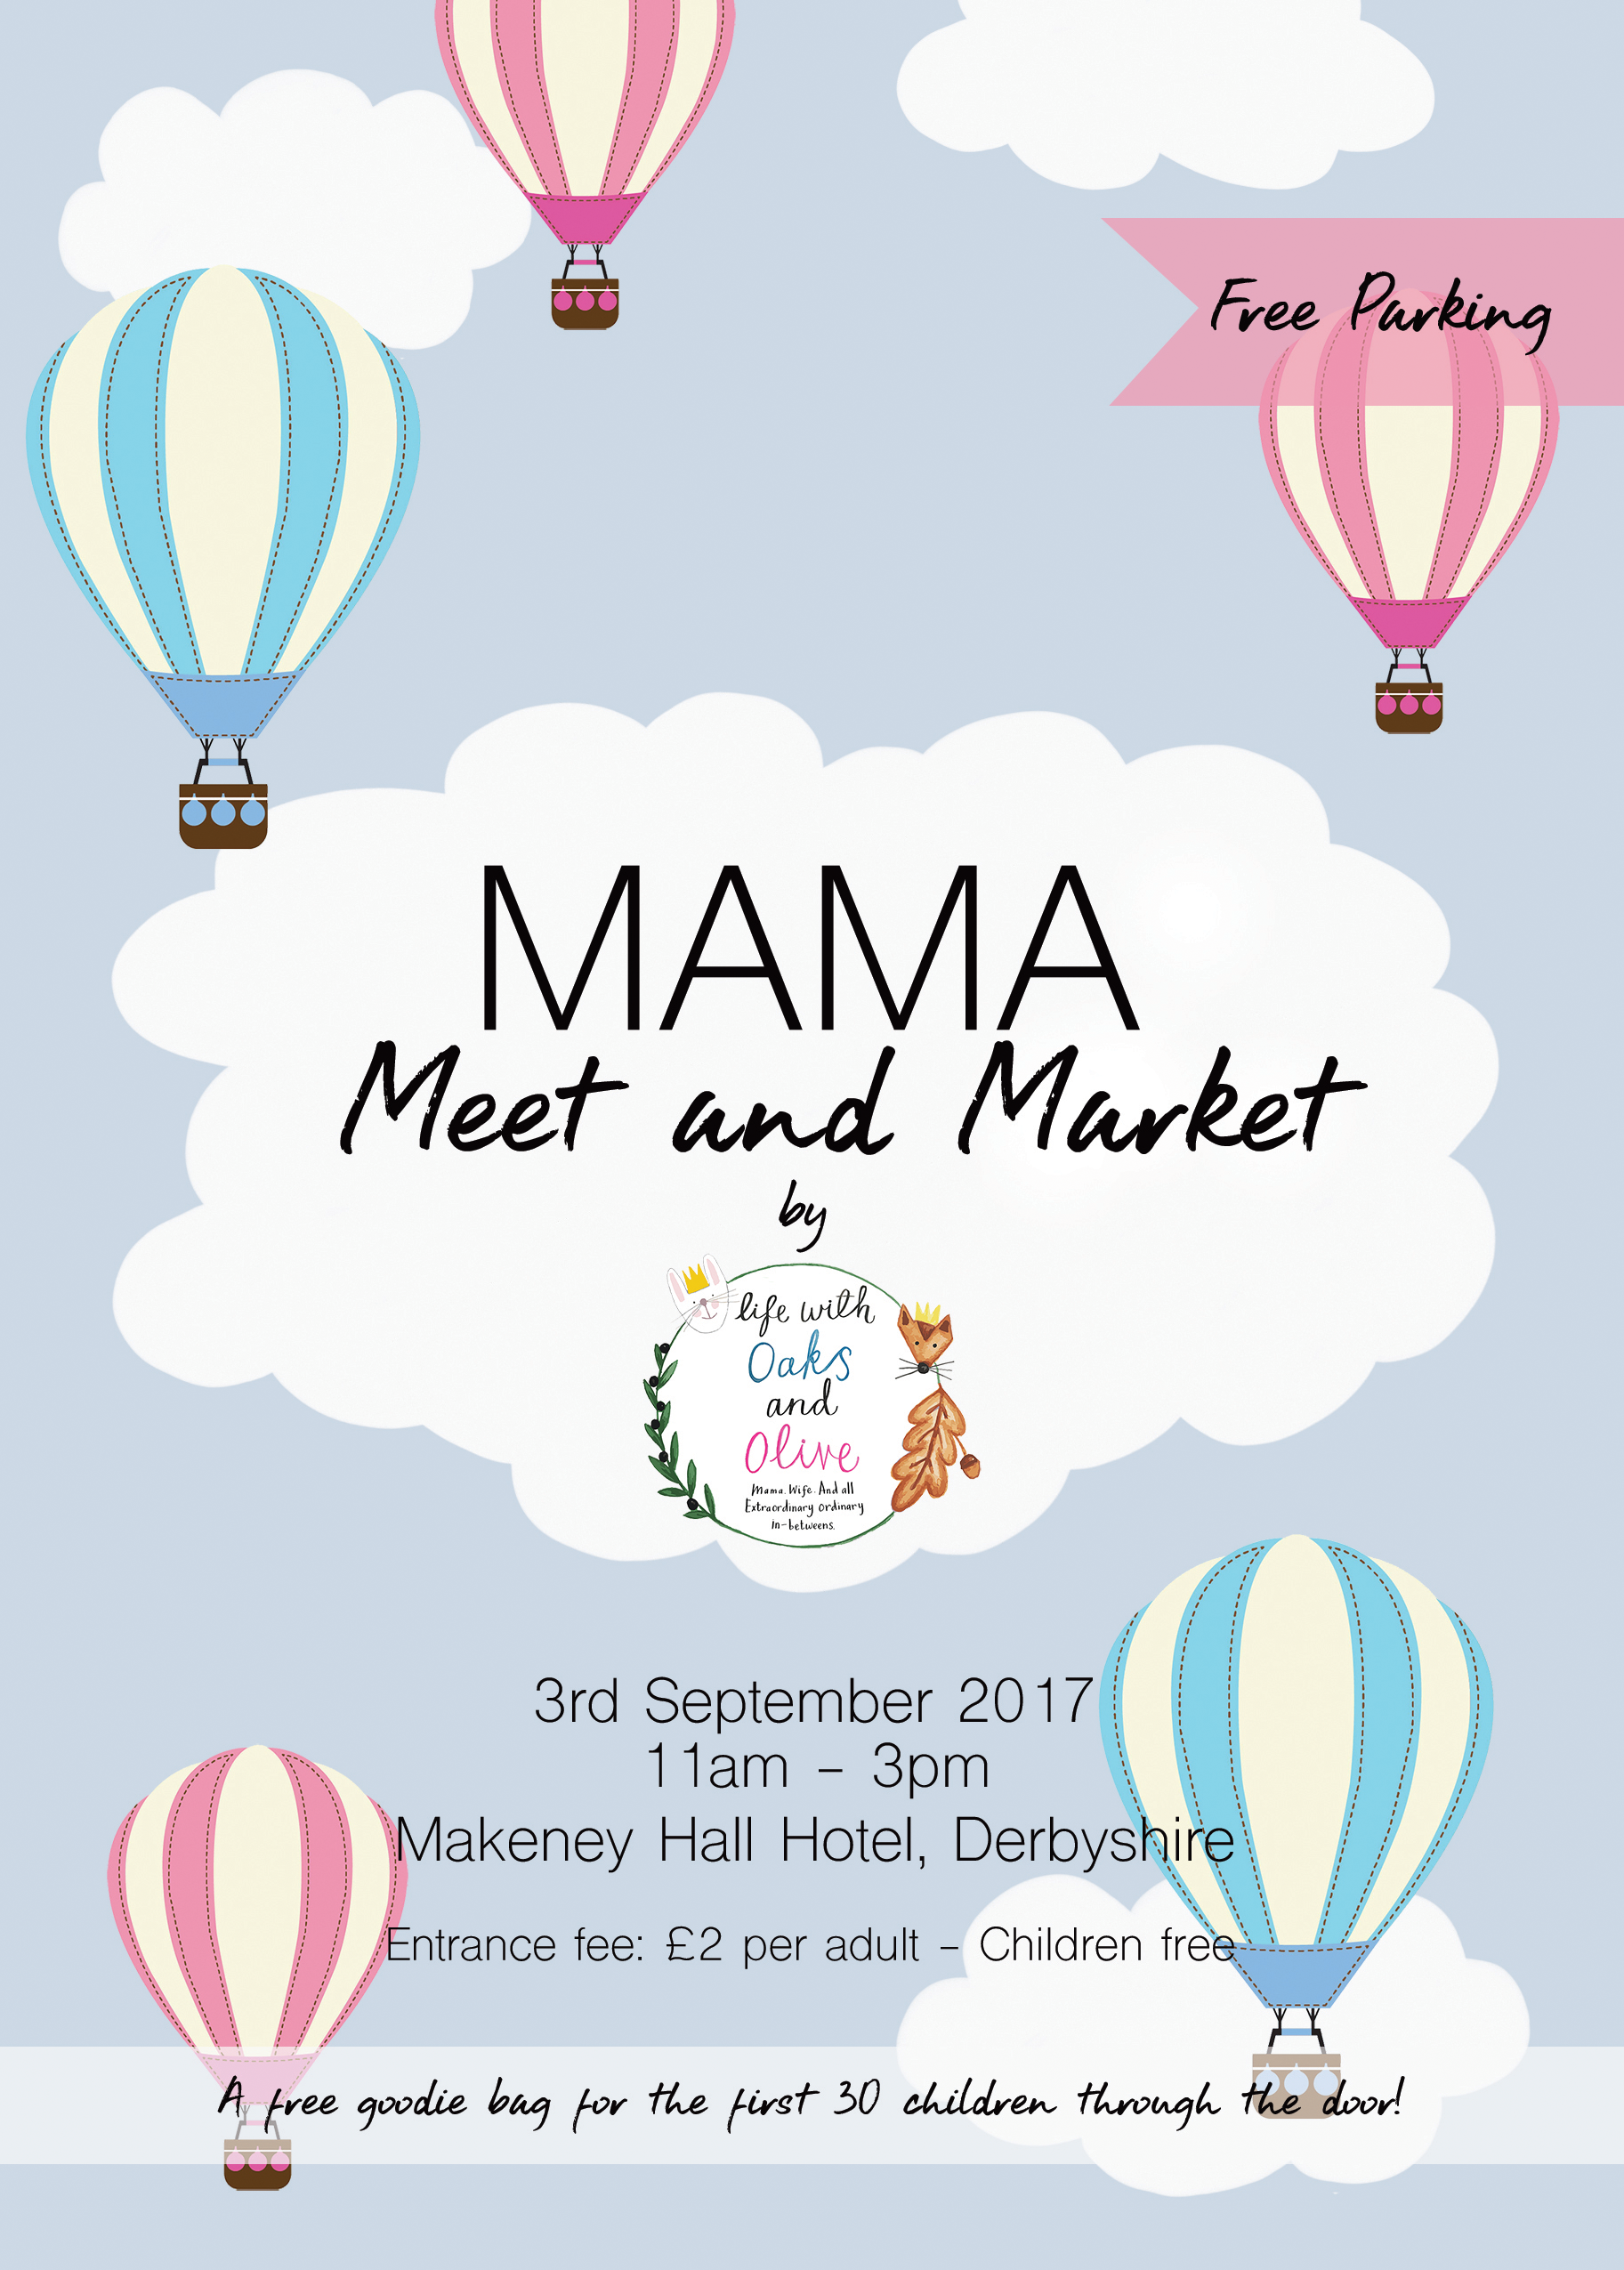 Mama meet and market by life with oaks and olive